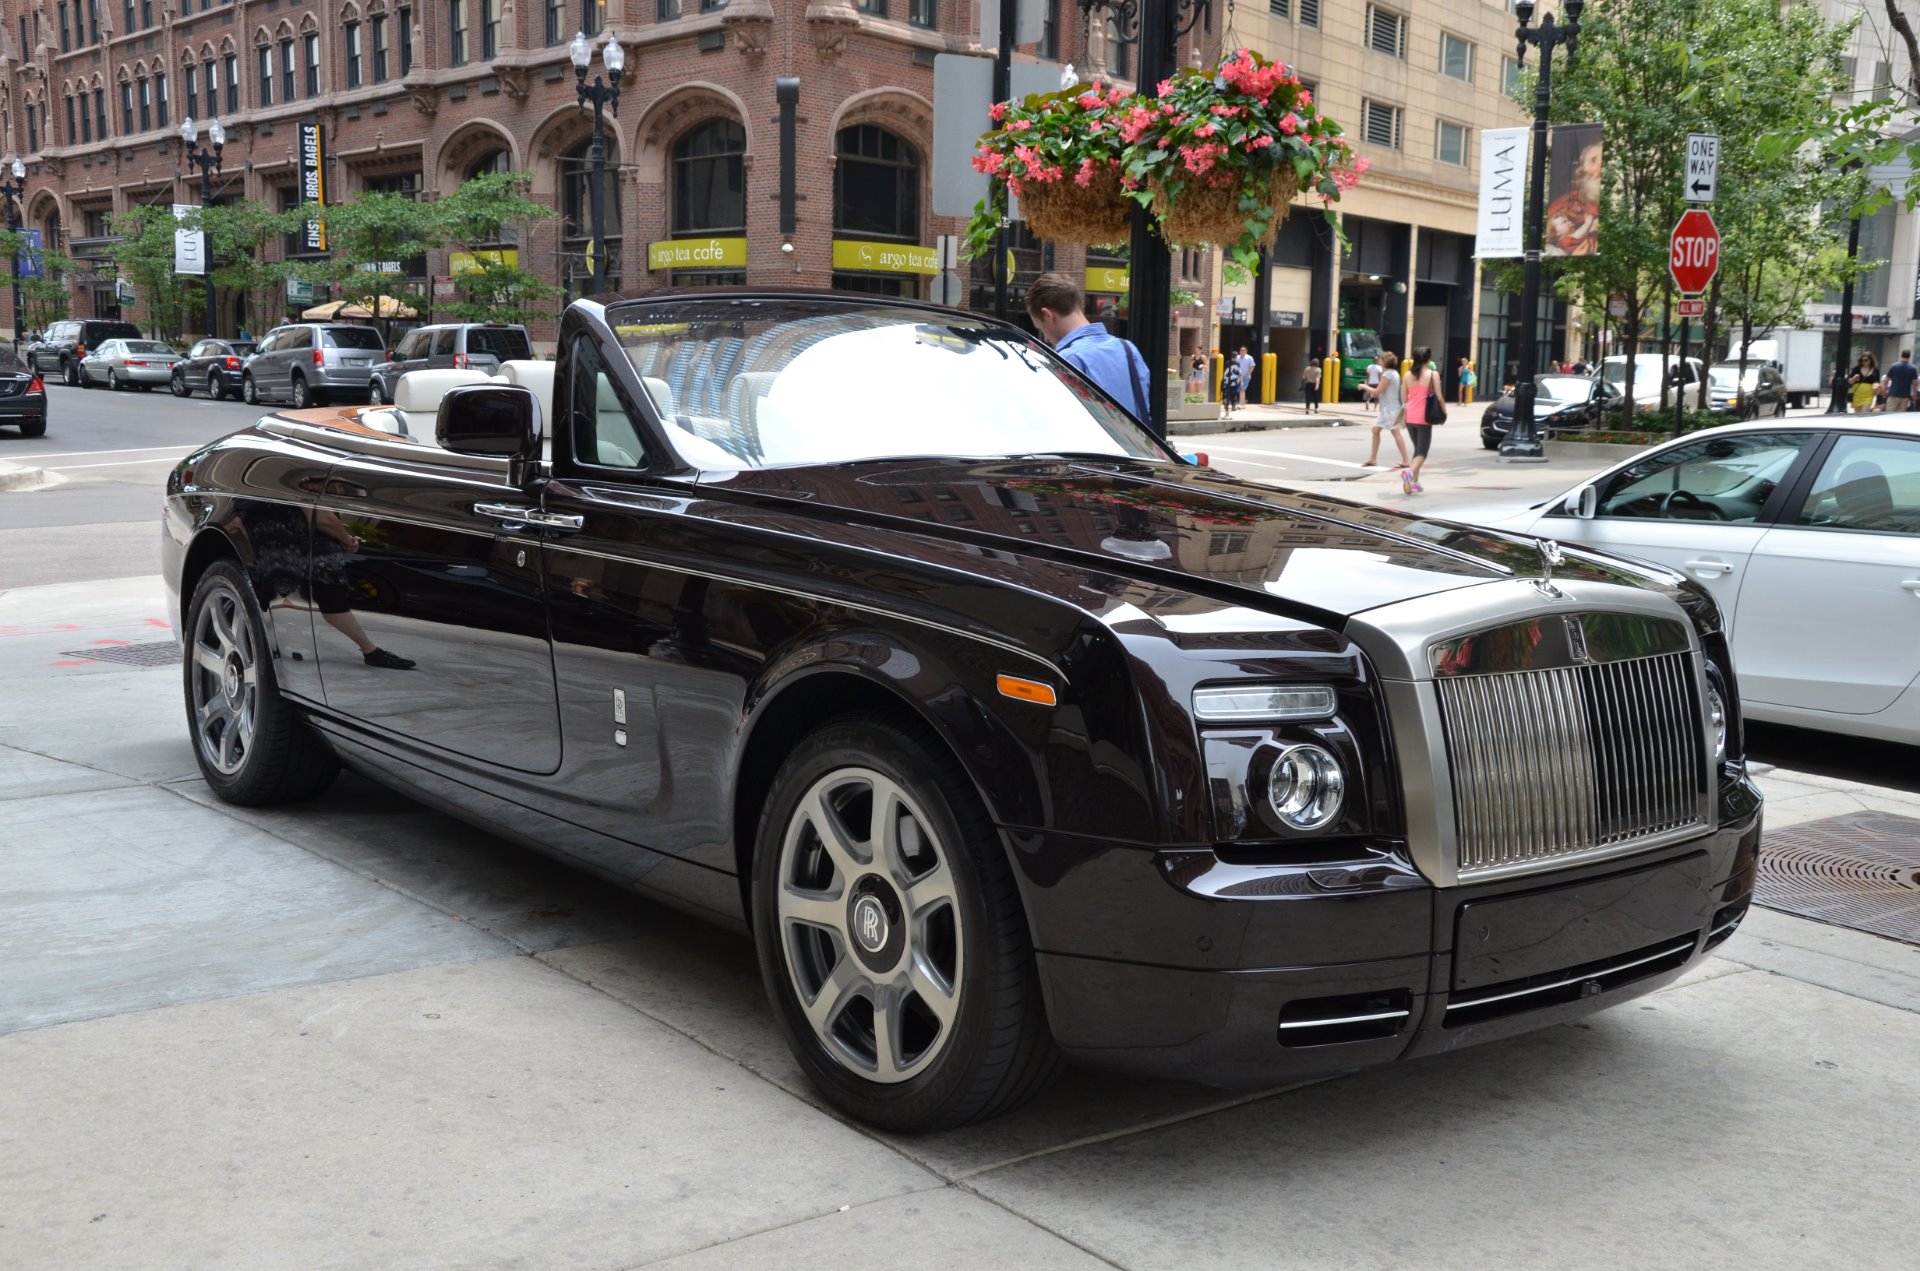 2012 rolls royce phantom drophead coupe stock b663a for sale near chicago il il rolls royce. Black Bedroom Furniture Sets. Home Design Ideas